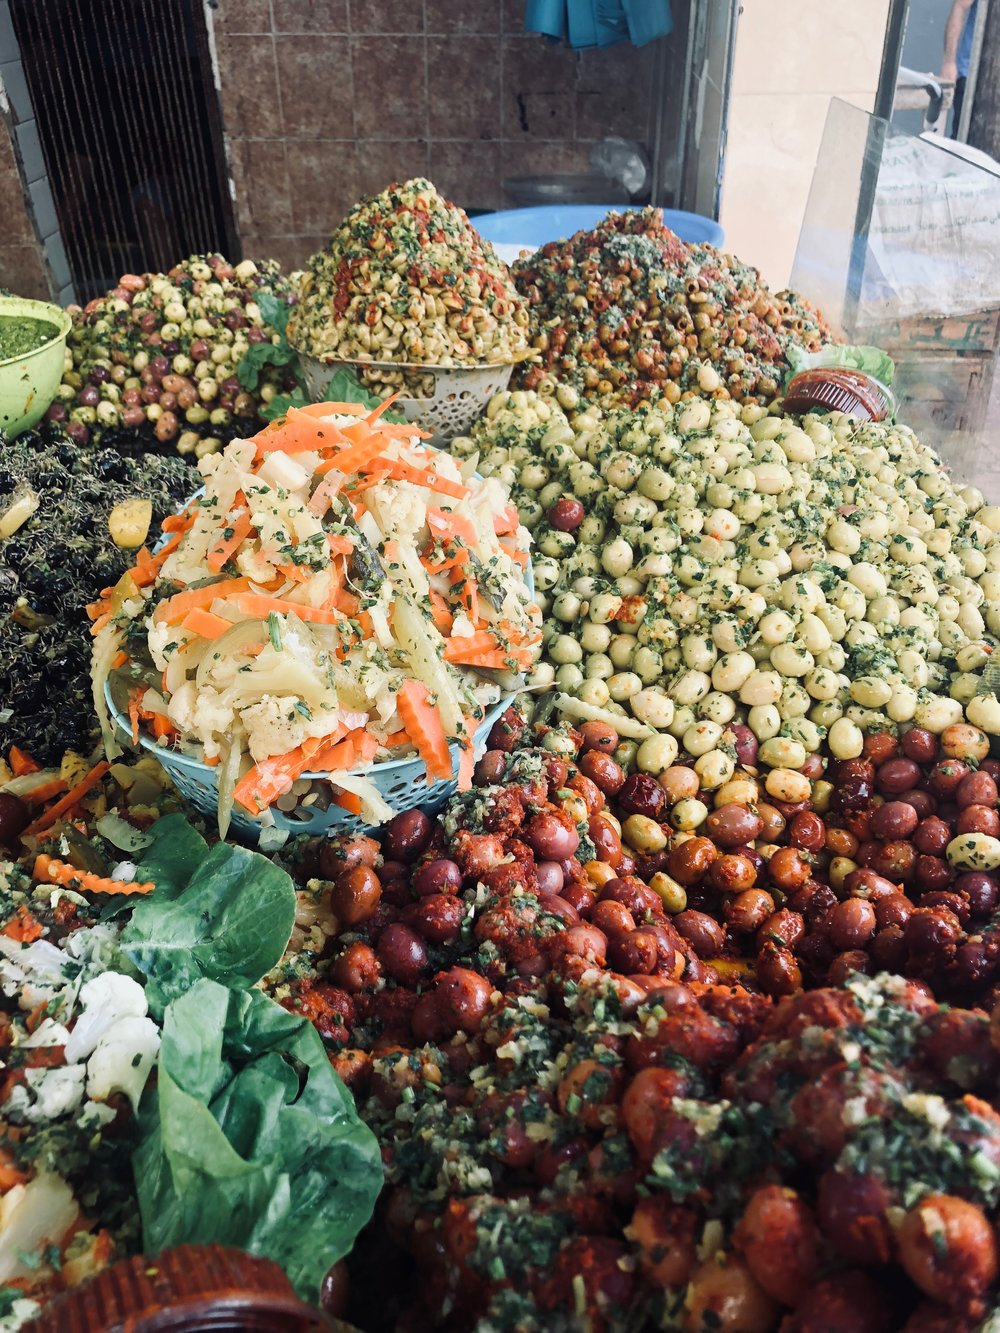 Mountains of olives at the souq. Photo credit: J. Miller, Fall 2018